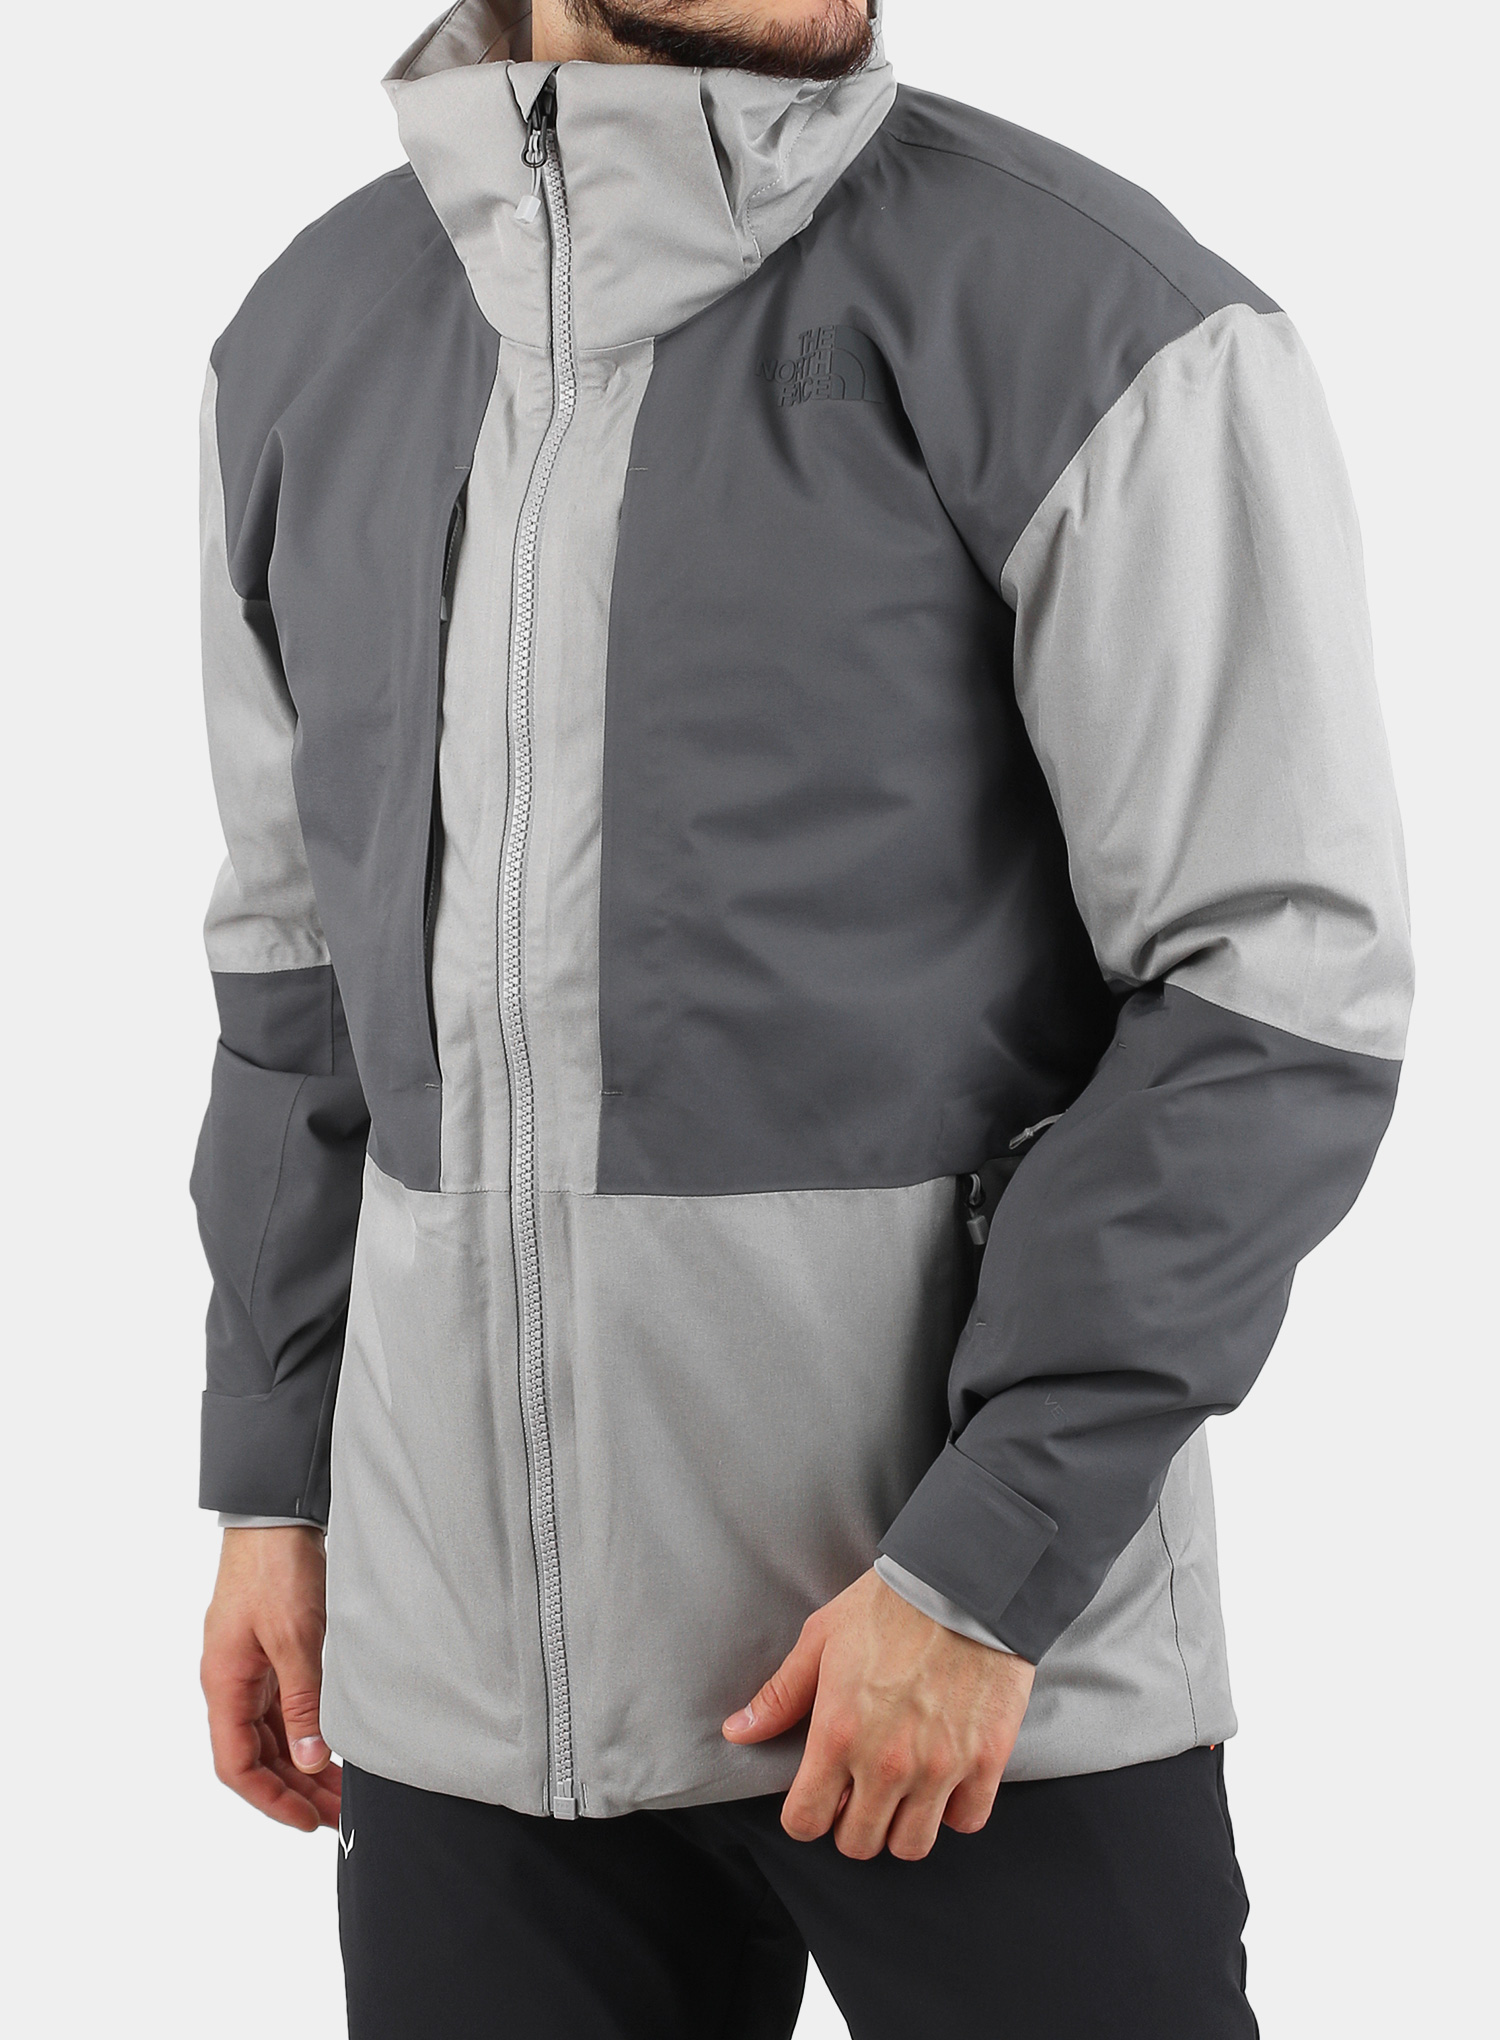 Kurtka The North Face Chakal Jacket - meld grey/vanadis grey - zdjęcie nr. 7